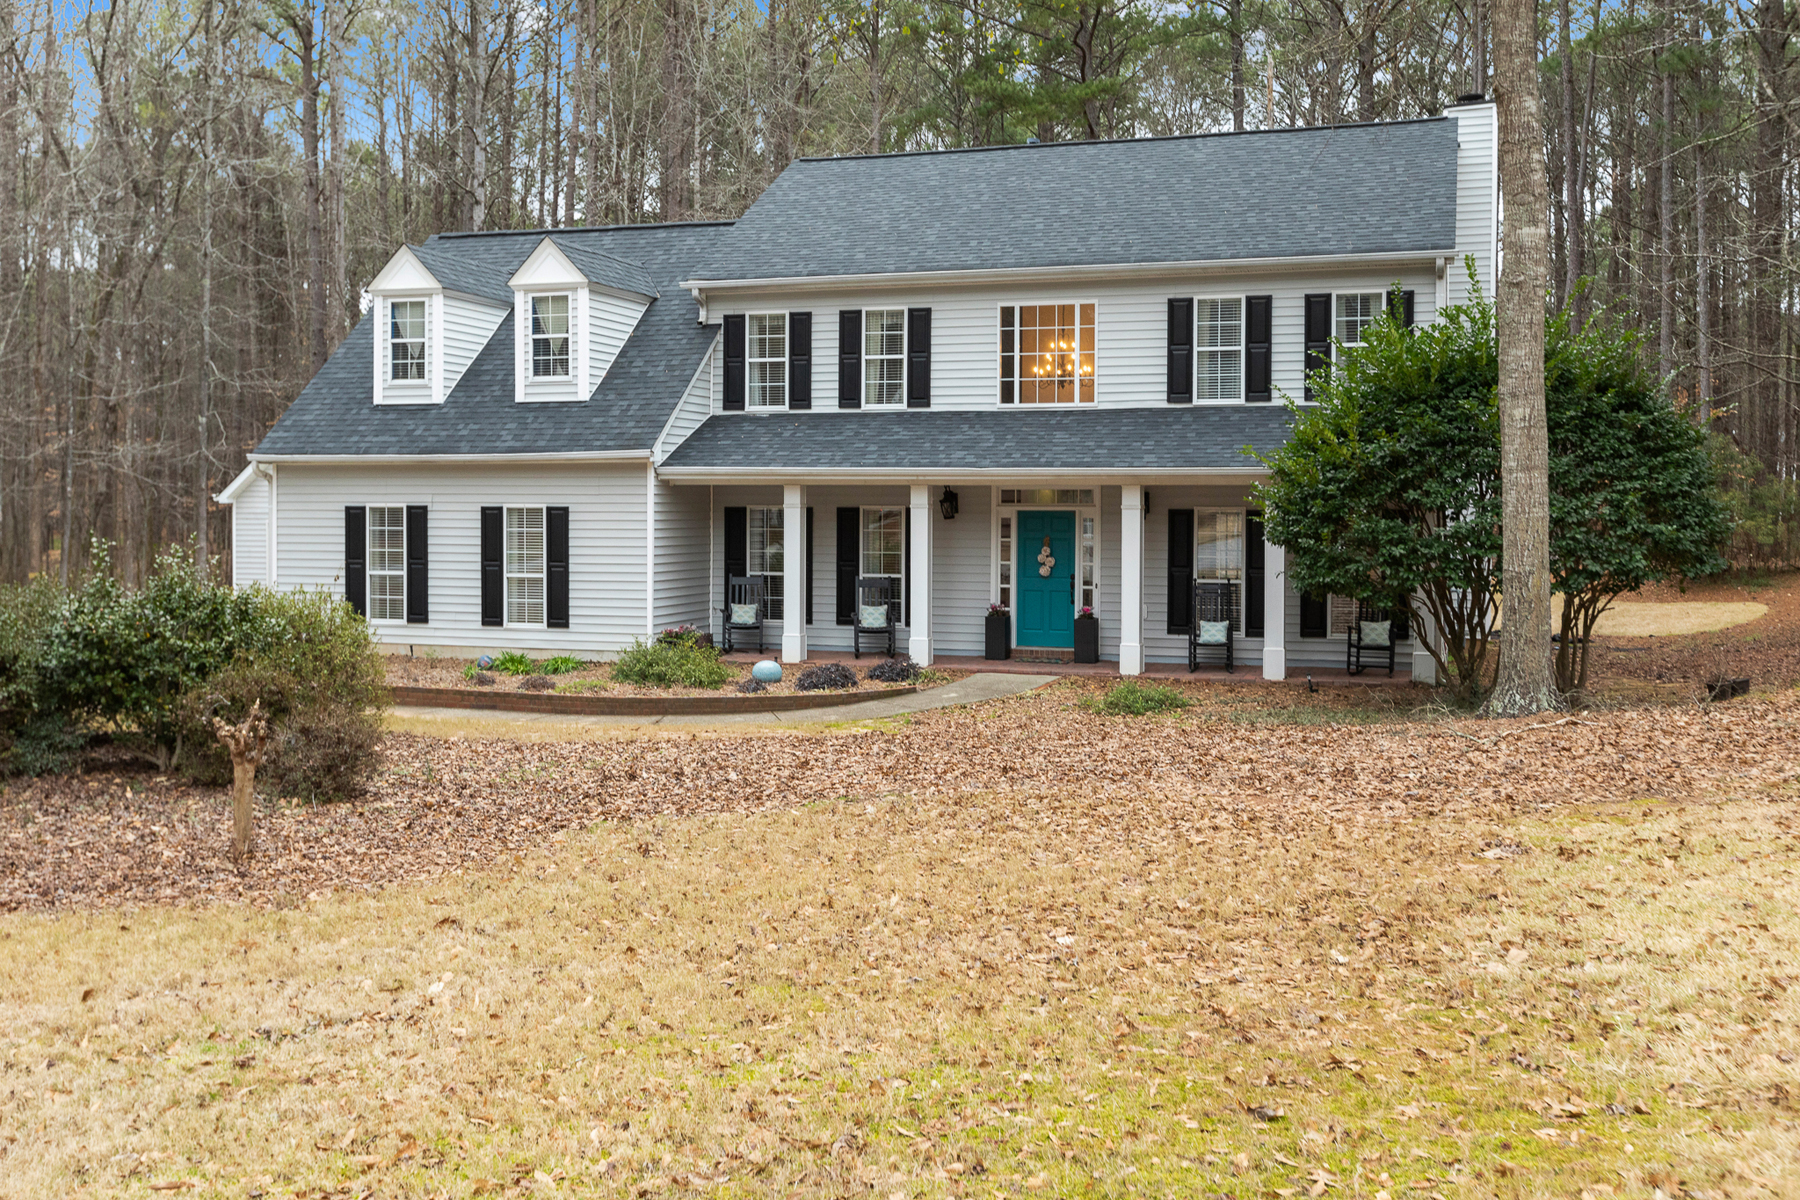 Single Family Homes for Sale at Beautifully Renovated Home in Jefferson Woods 150 Mockingbird Trail Peachtree City, Georgia 30269 United States